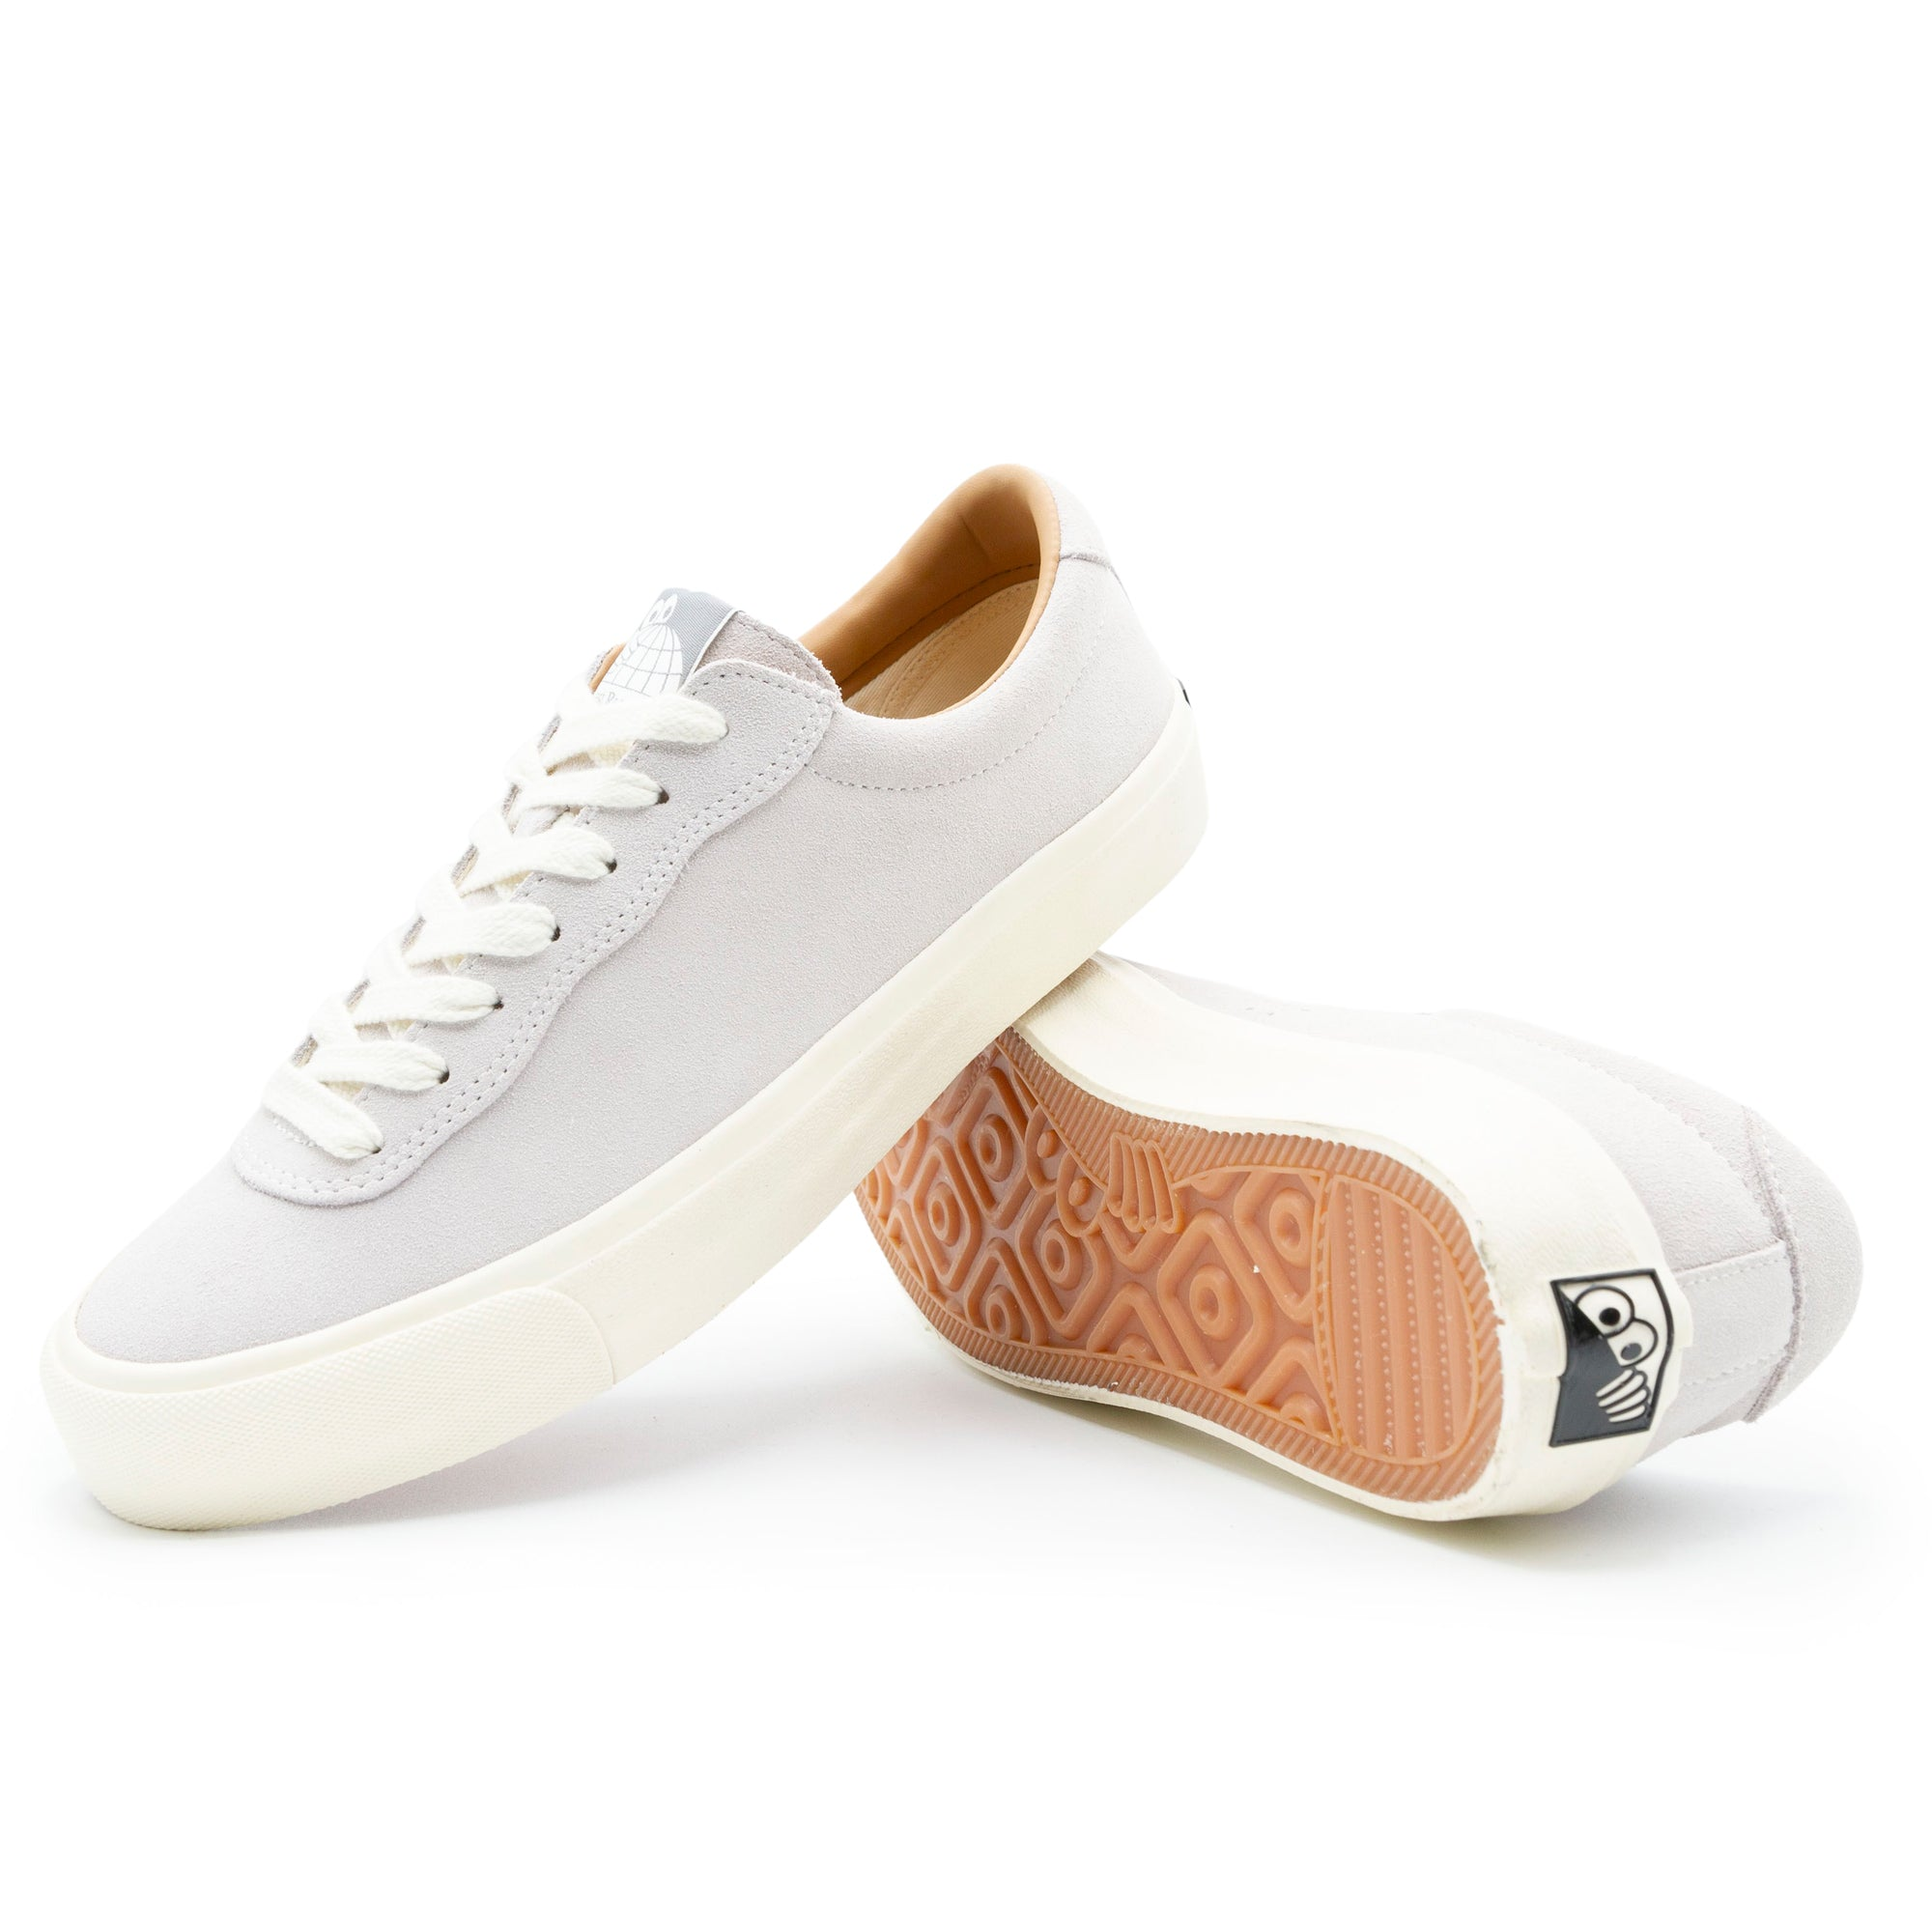 Last Resort AB VM001 Shoes - White/White